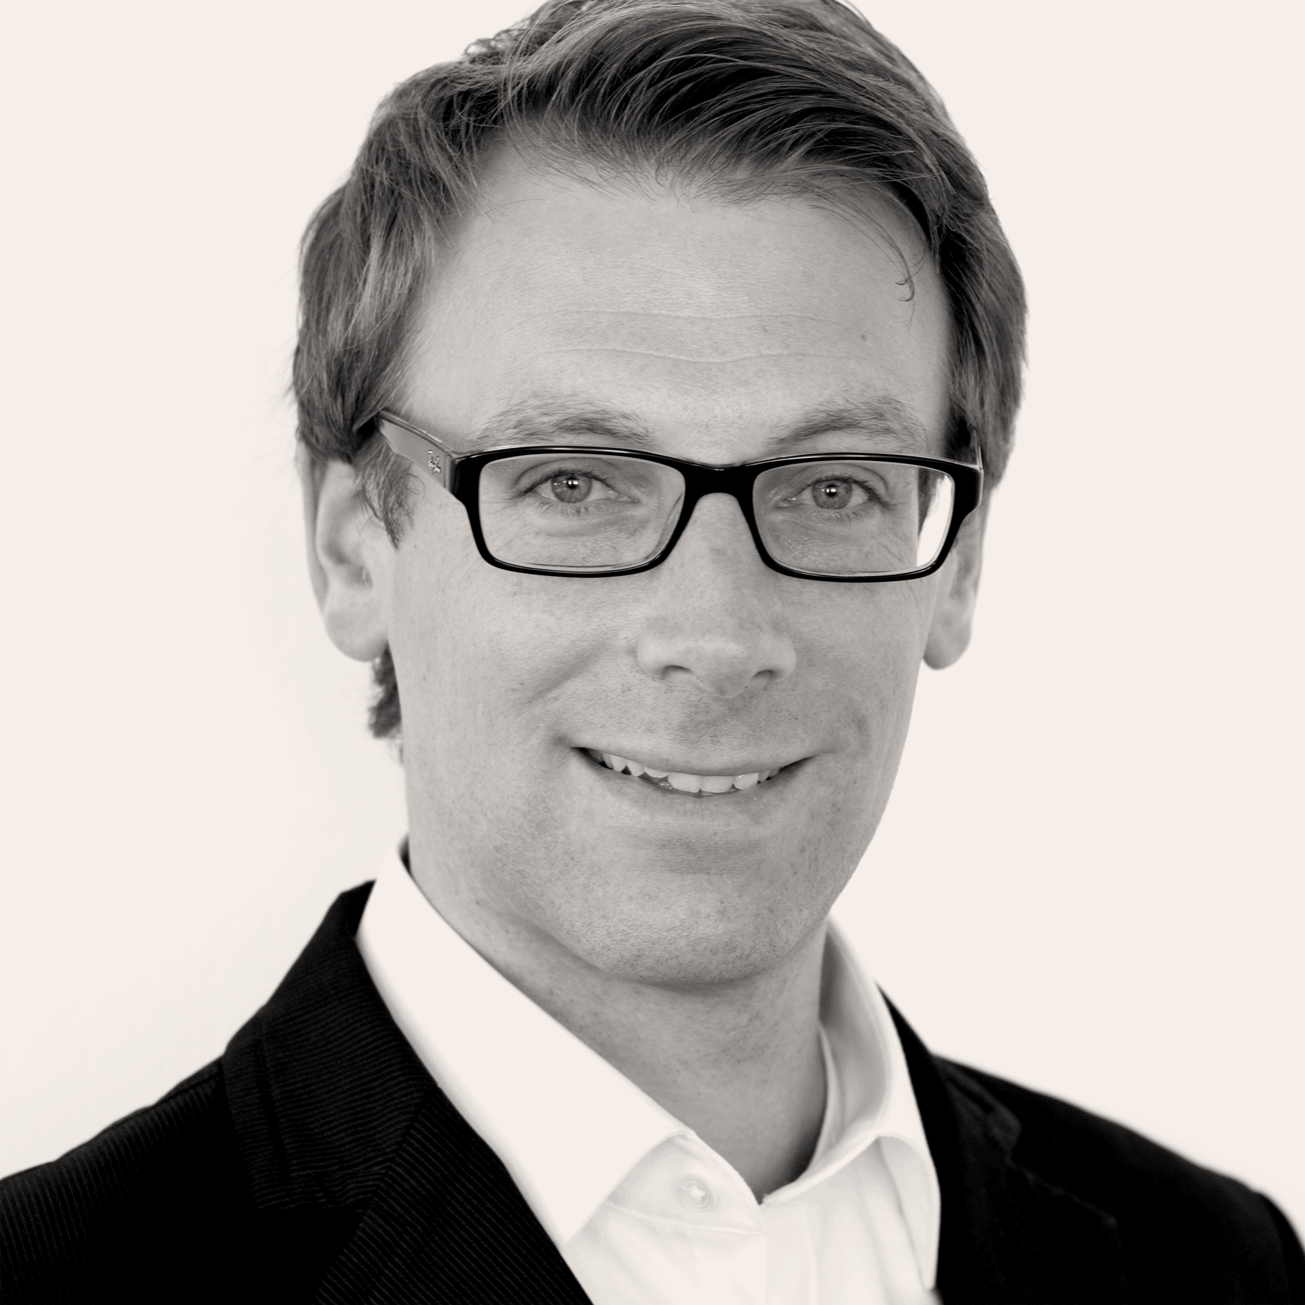 Andreas Wachter